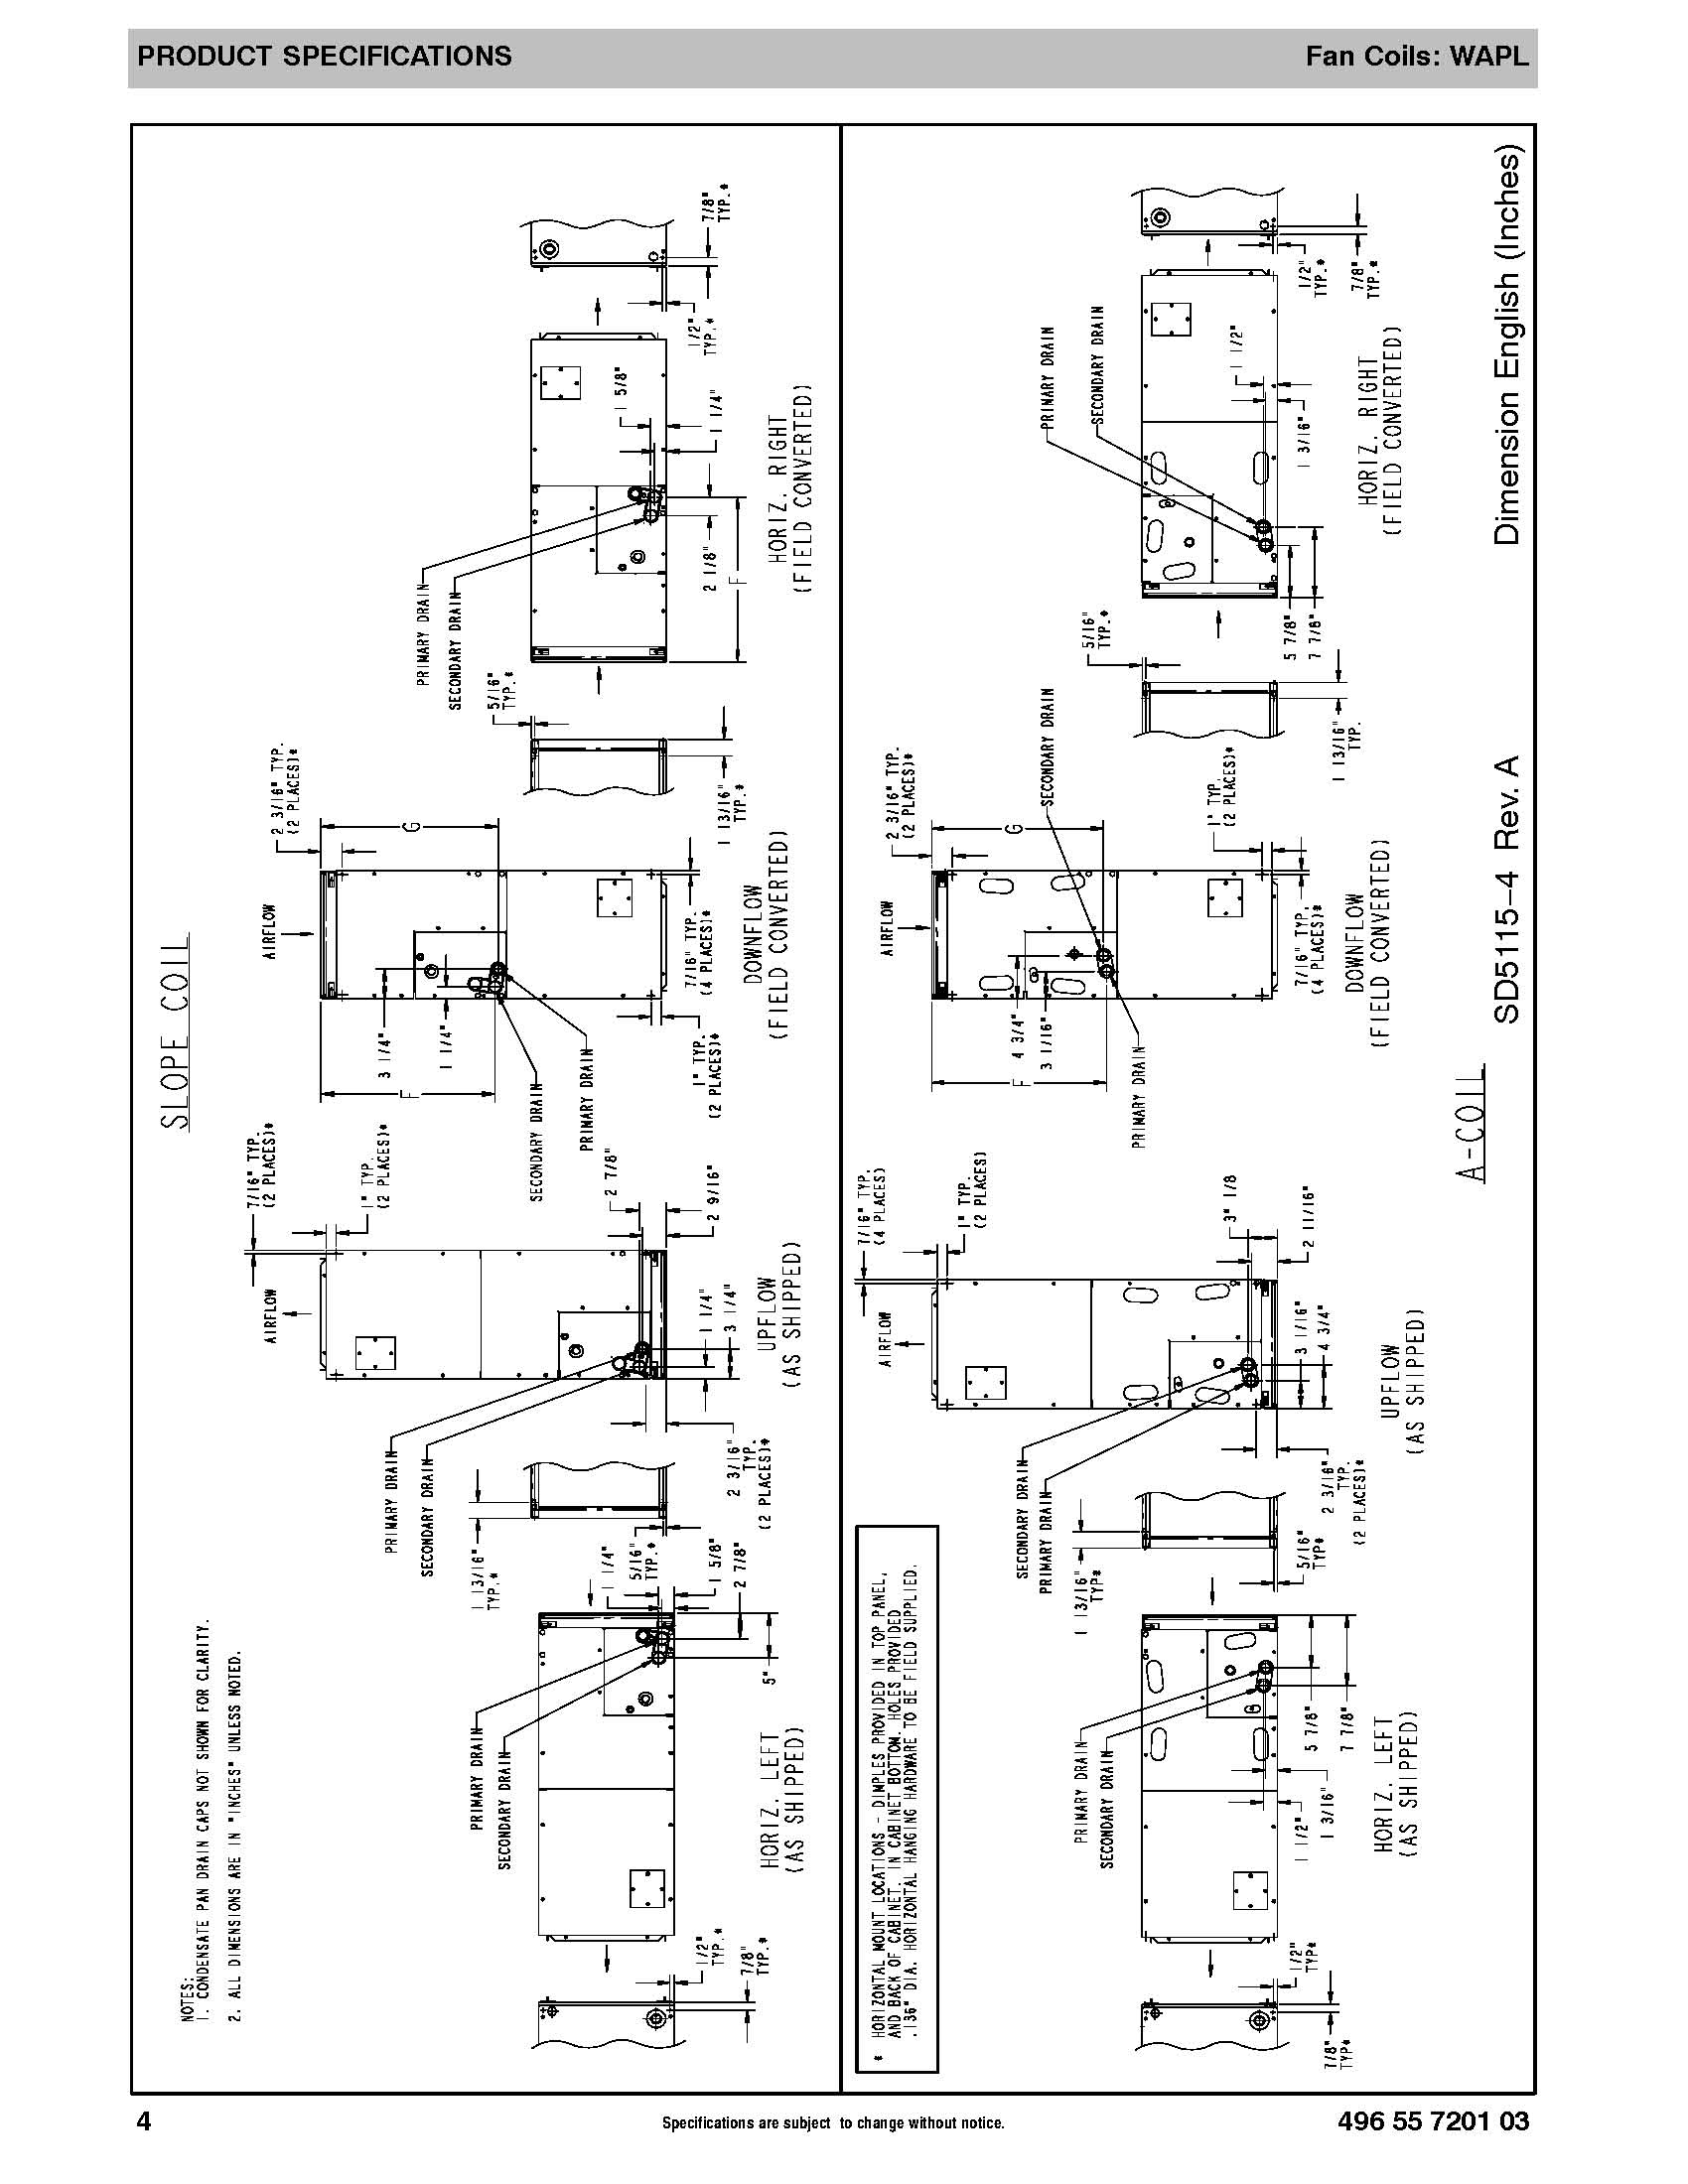 Grandaire ac wiring diagram engine combustion chamber